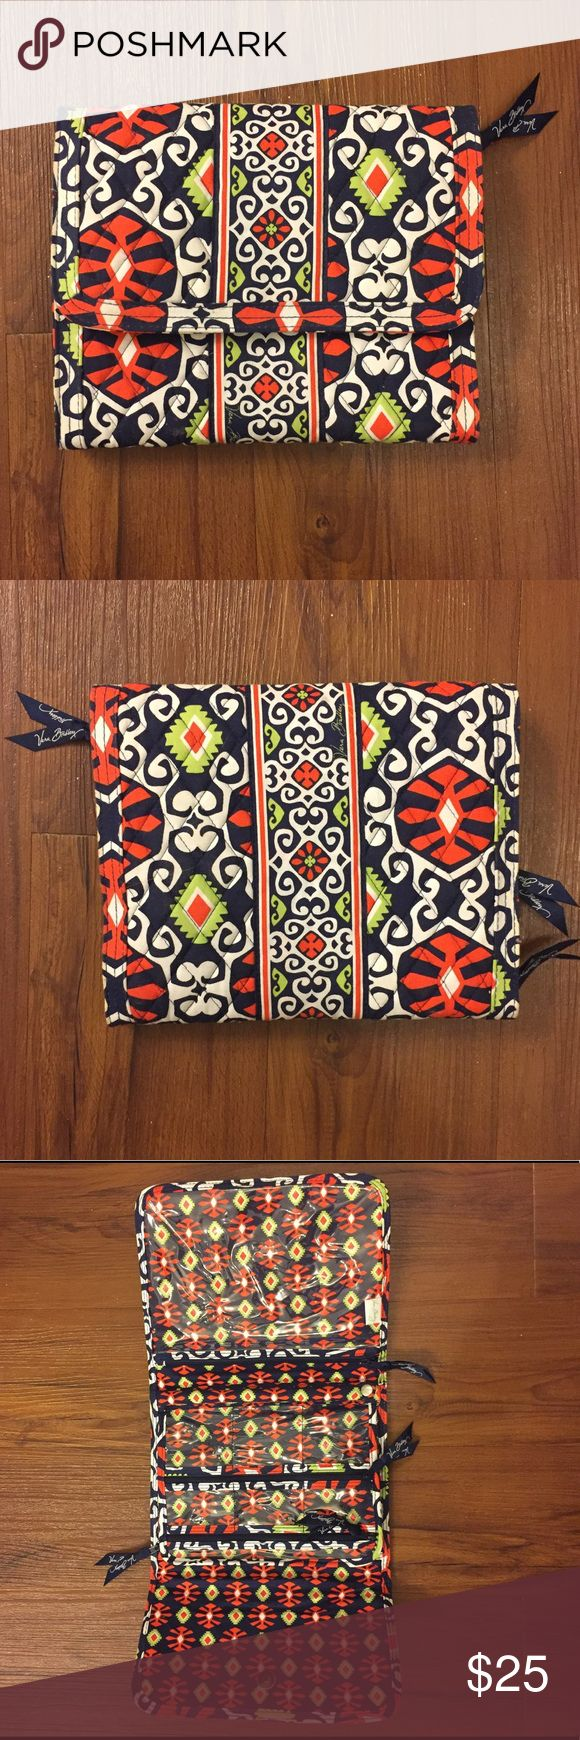 Vera Bradley Travel Jewelry Organizer Vera Bradley travel tri-fold jewelry organizer in Sun Valley Print. Quilted fabric on outside and 9 zippered clear pockets of various sizes on inside, also has a ring holder snap sleeve and snap closure. Great condition! Vera Bradley Bags Travel Bags